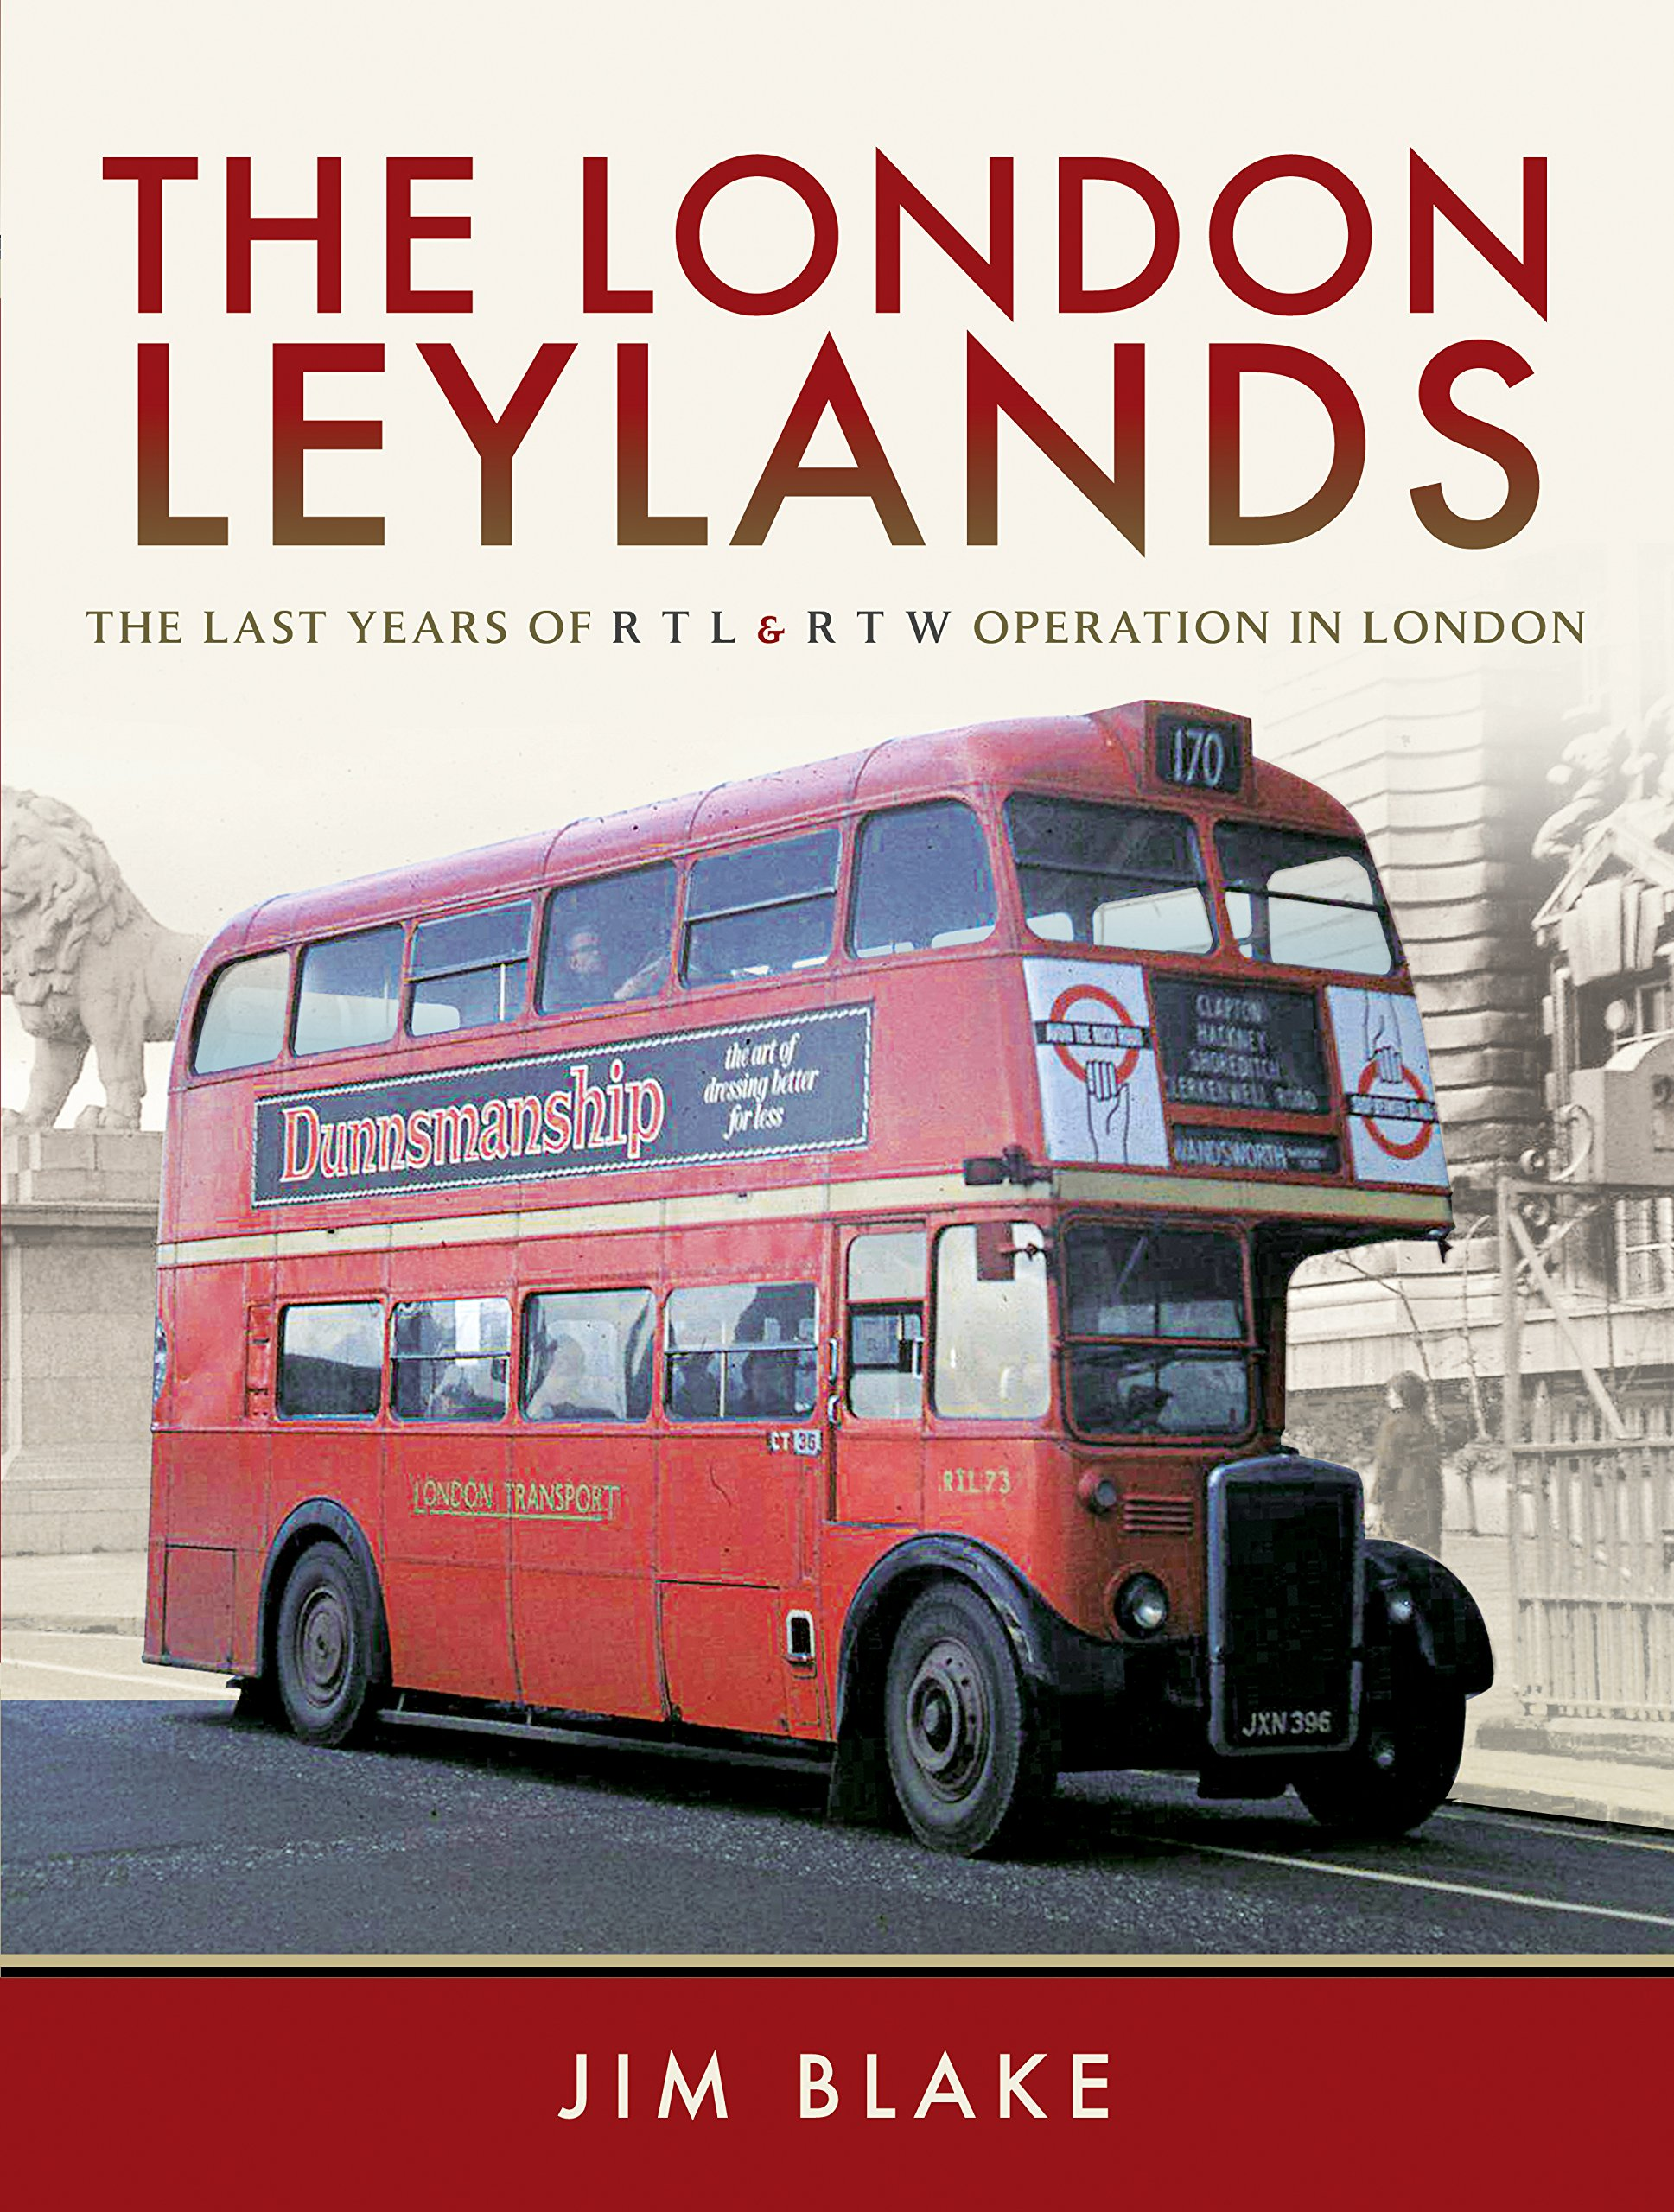 e3de1dbf2adc36 The London Leylands  The Last Years of R T L and R T W Operation in London  Hardcover – 26 Mar 2018